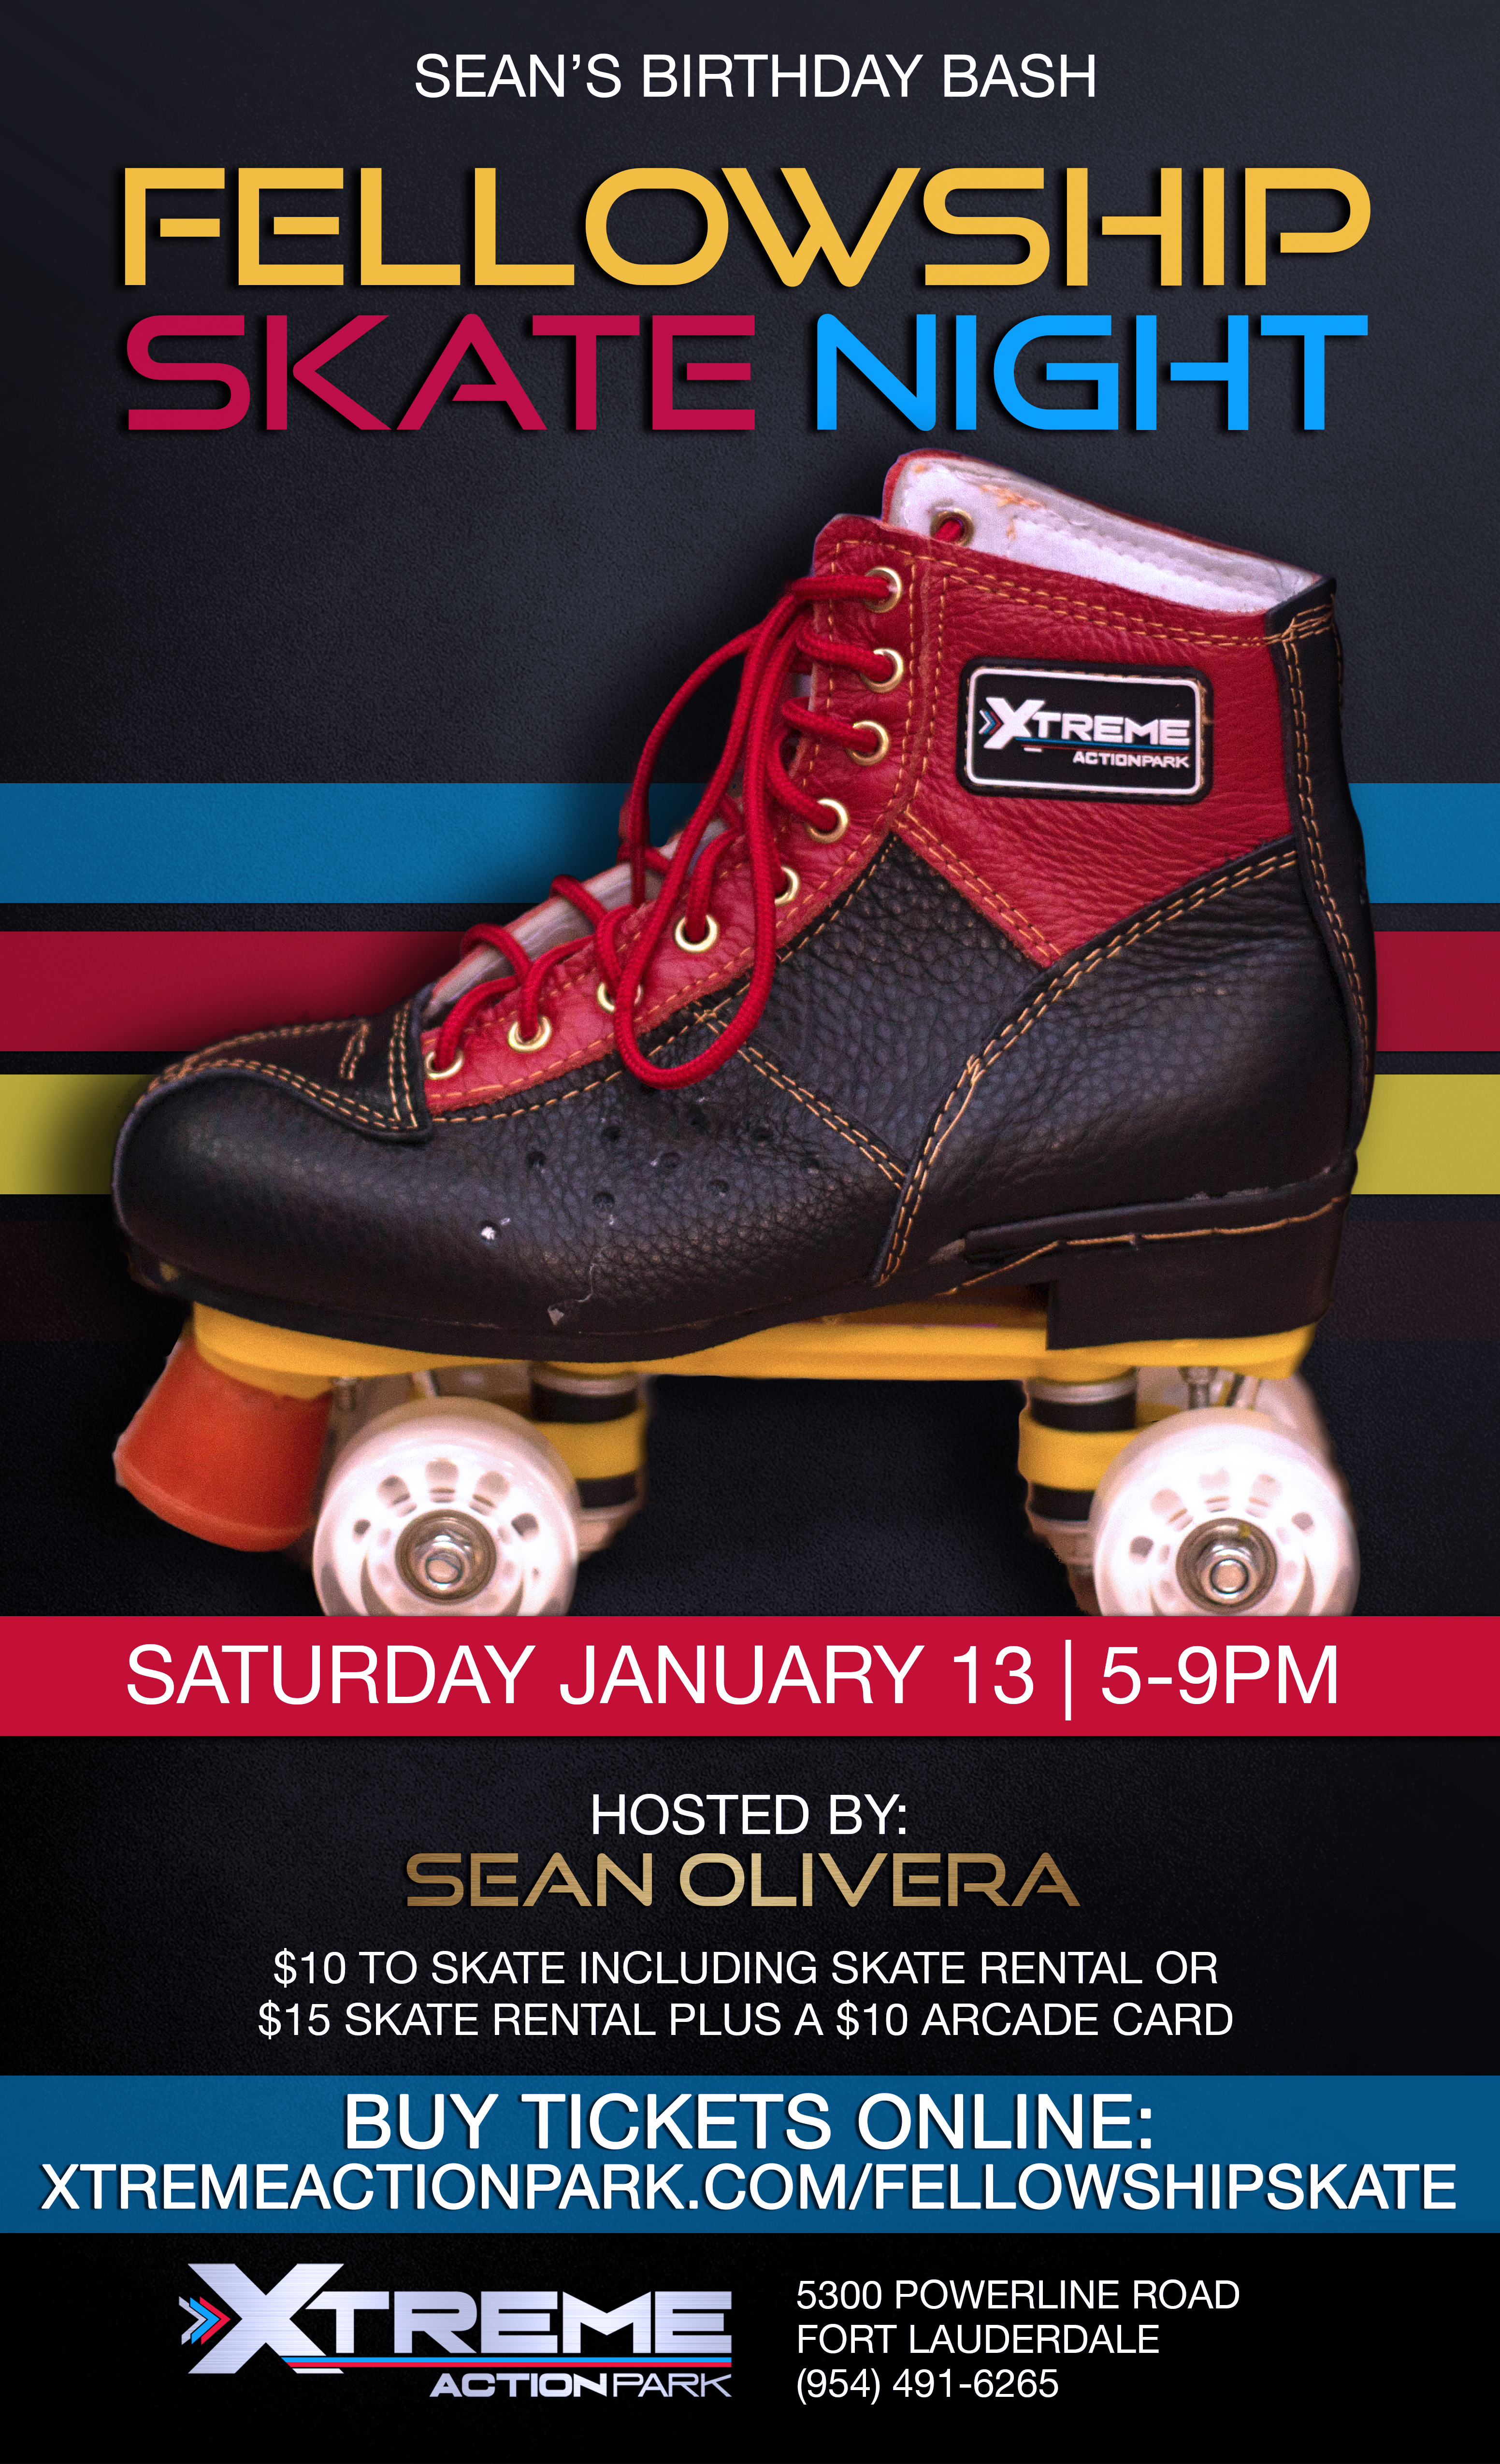 Fellowship Skate Night